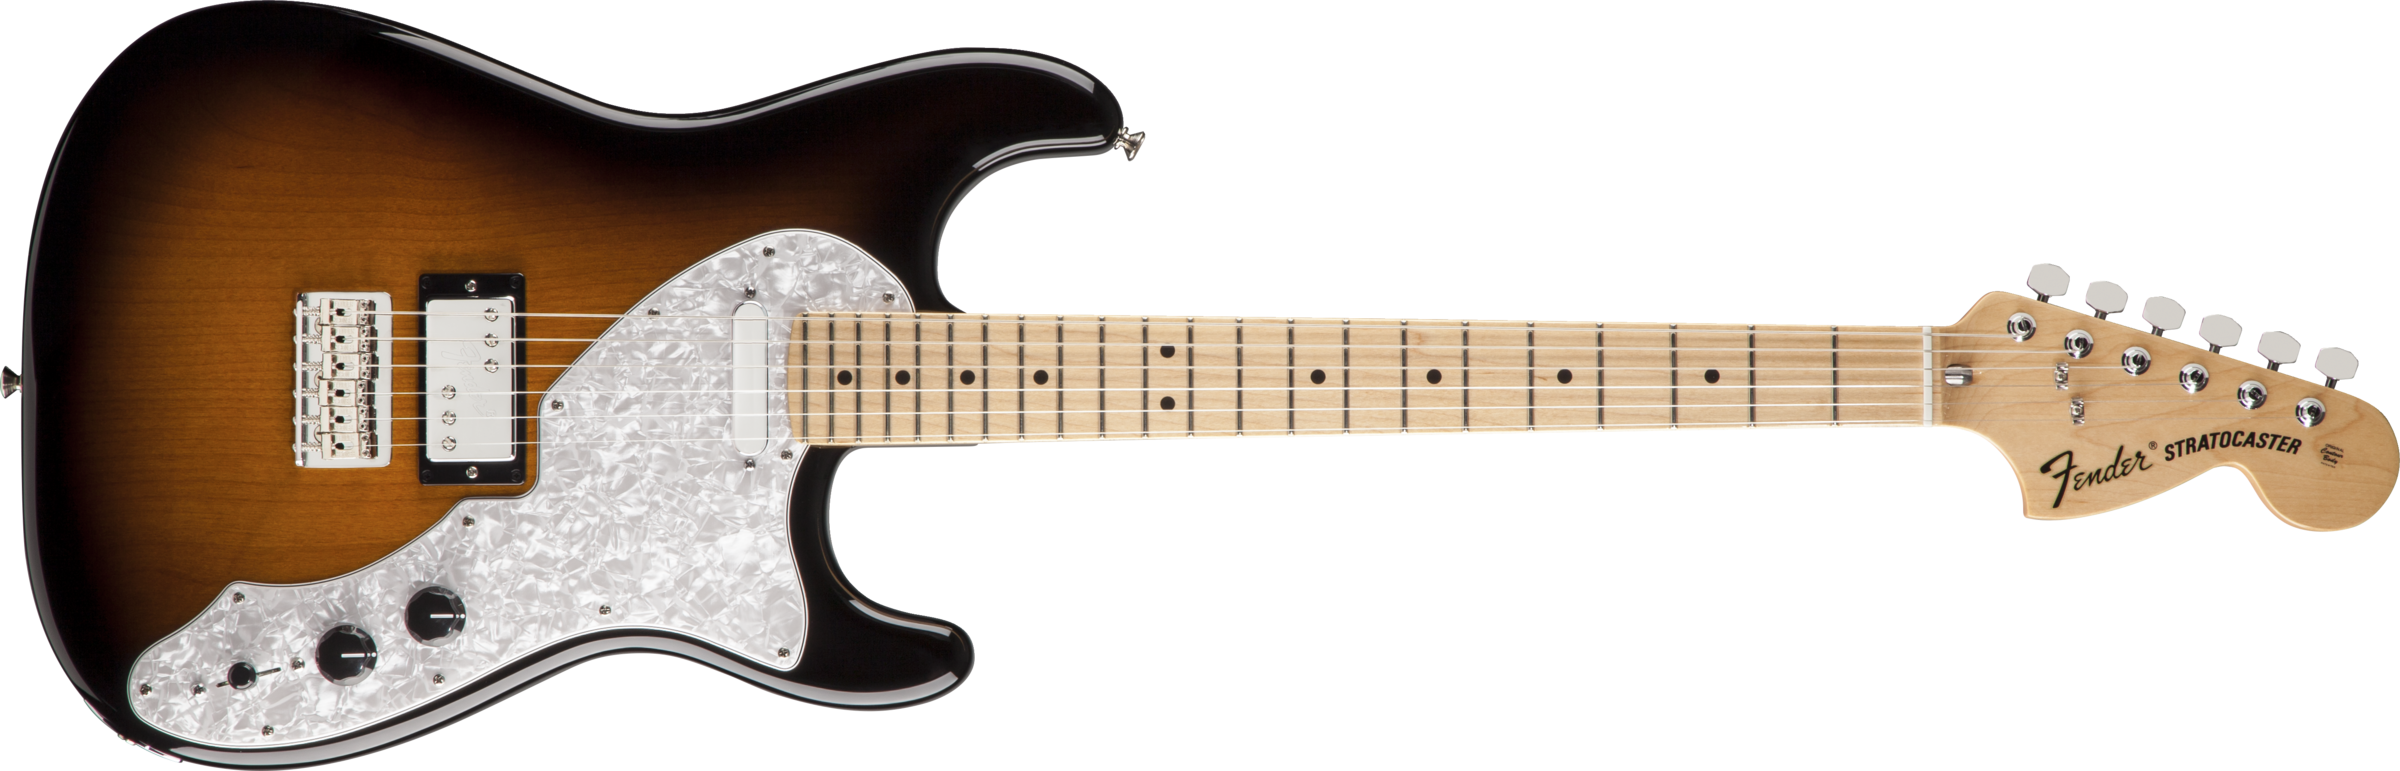 Pawn Shop '70s Stratocaster® Deluxe | Stratocaster® Electric Guitars | Fender® Guitars